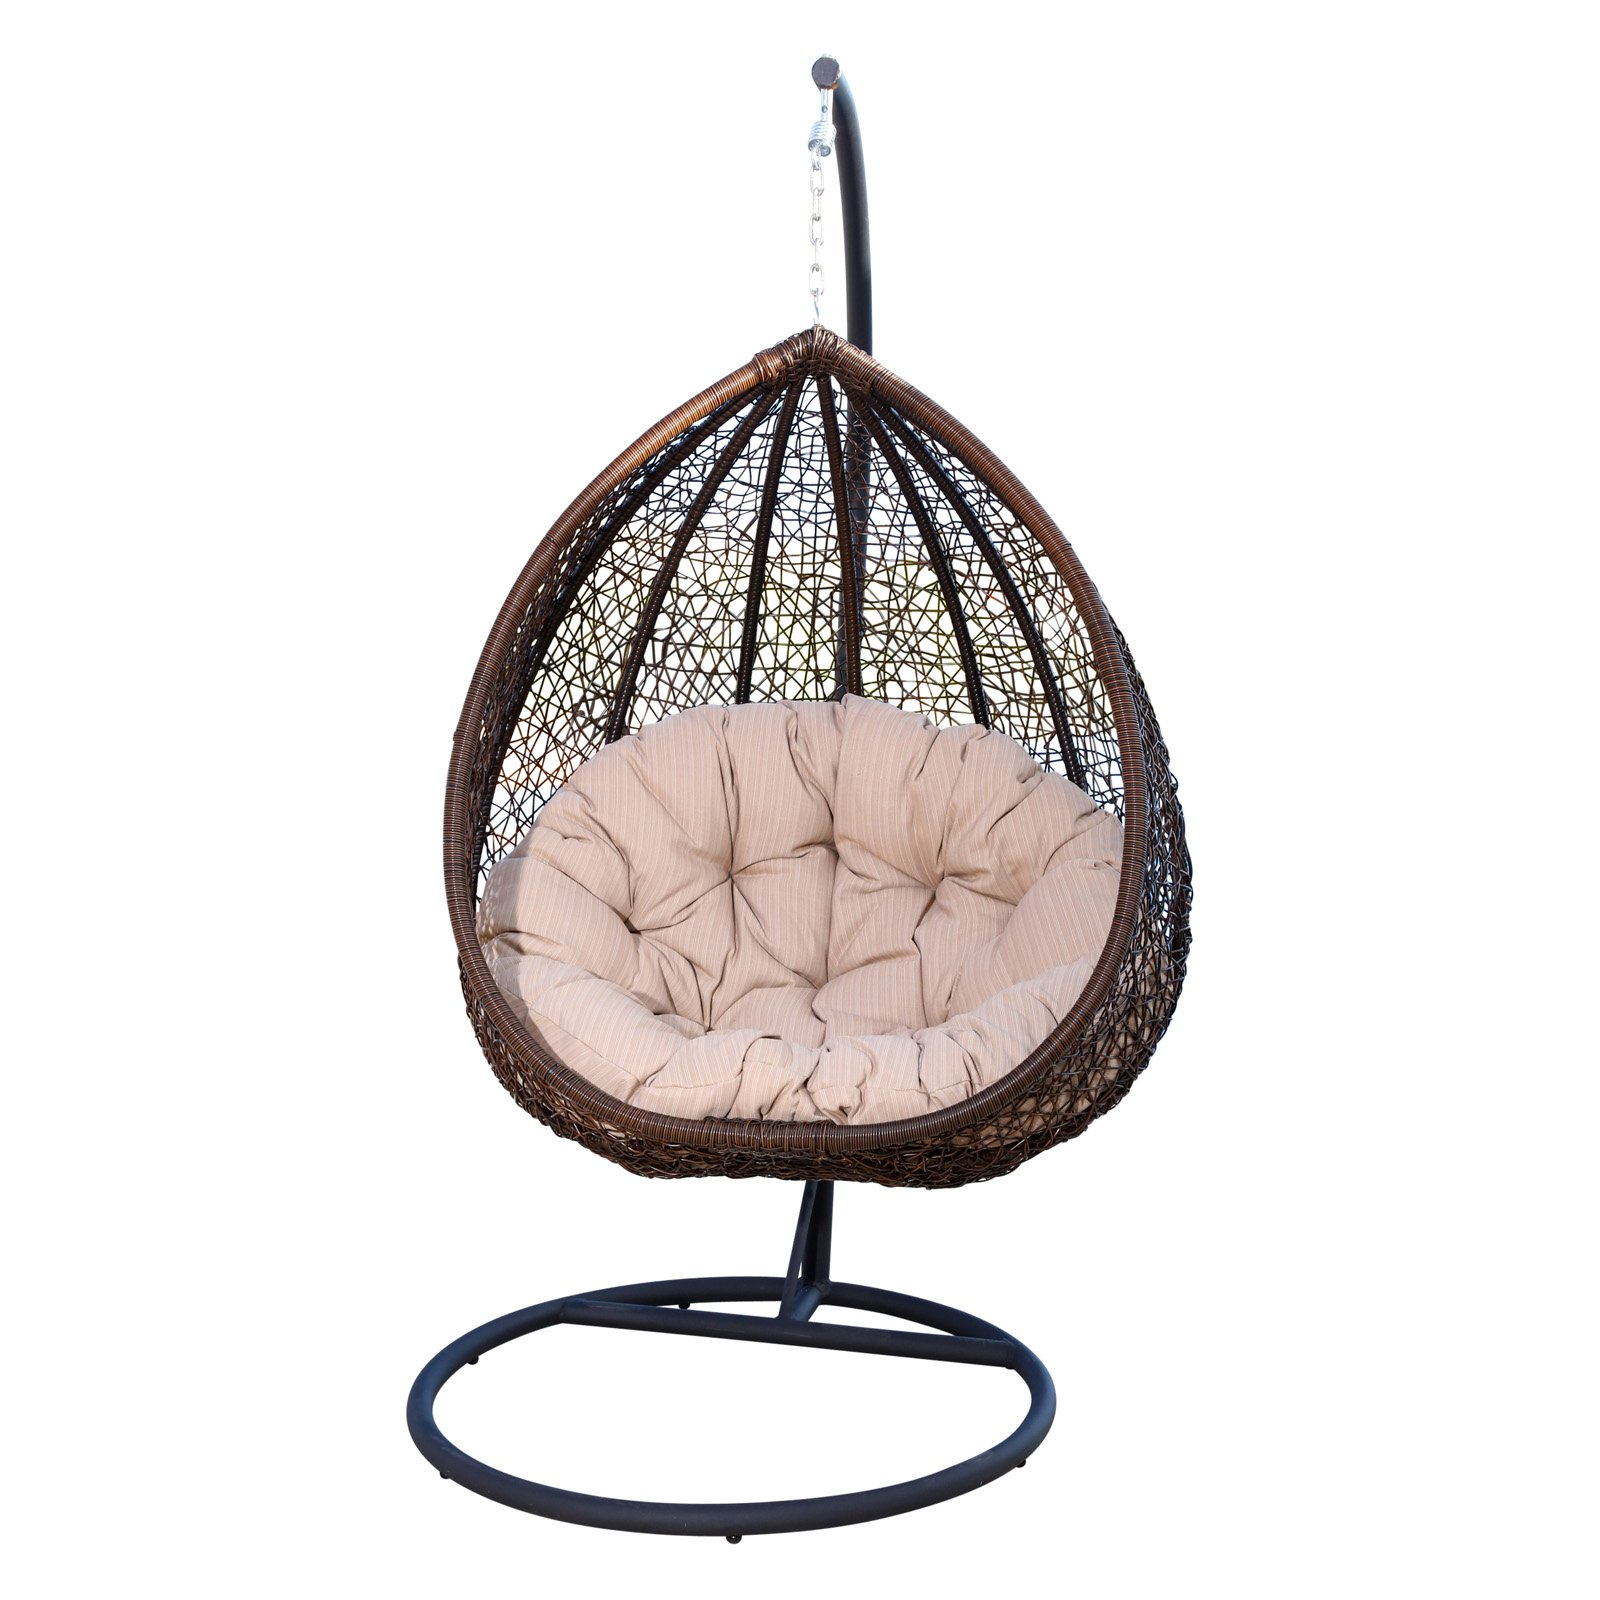 Astounding Abbyson Carmen Outdoor Wicker Swing Chair With Stand And Bralicious Painted Fabric Chair Ideas Braliciousco